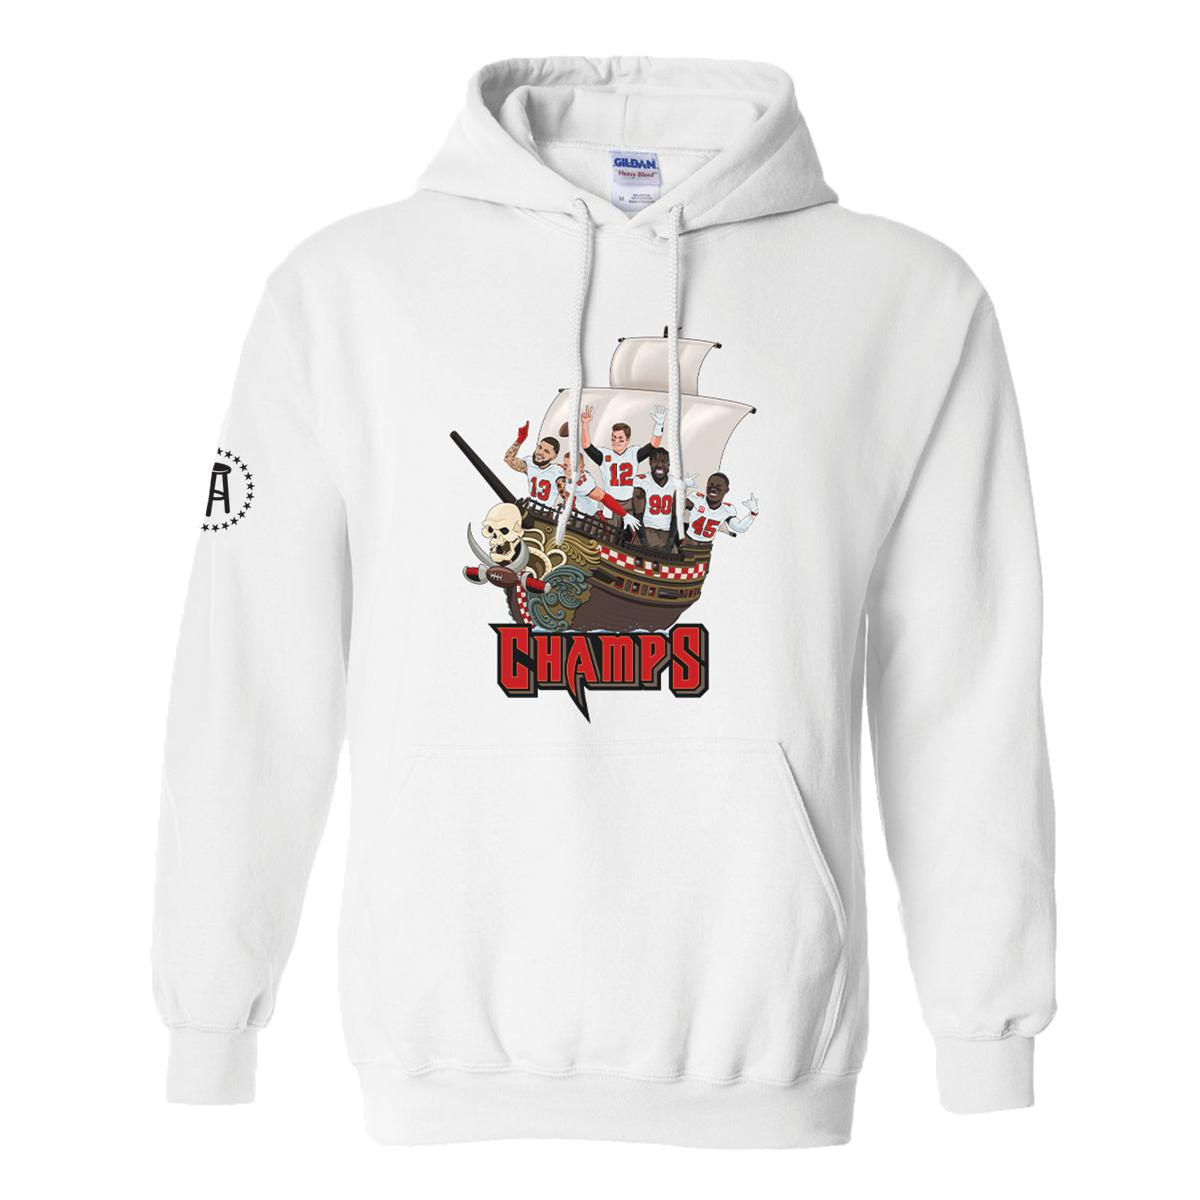 Pirate Ship Champs Hoodie